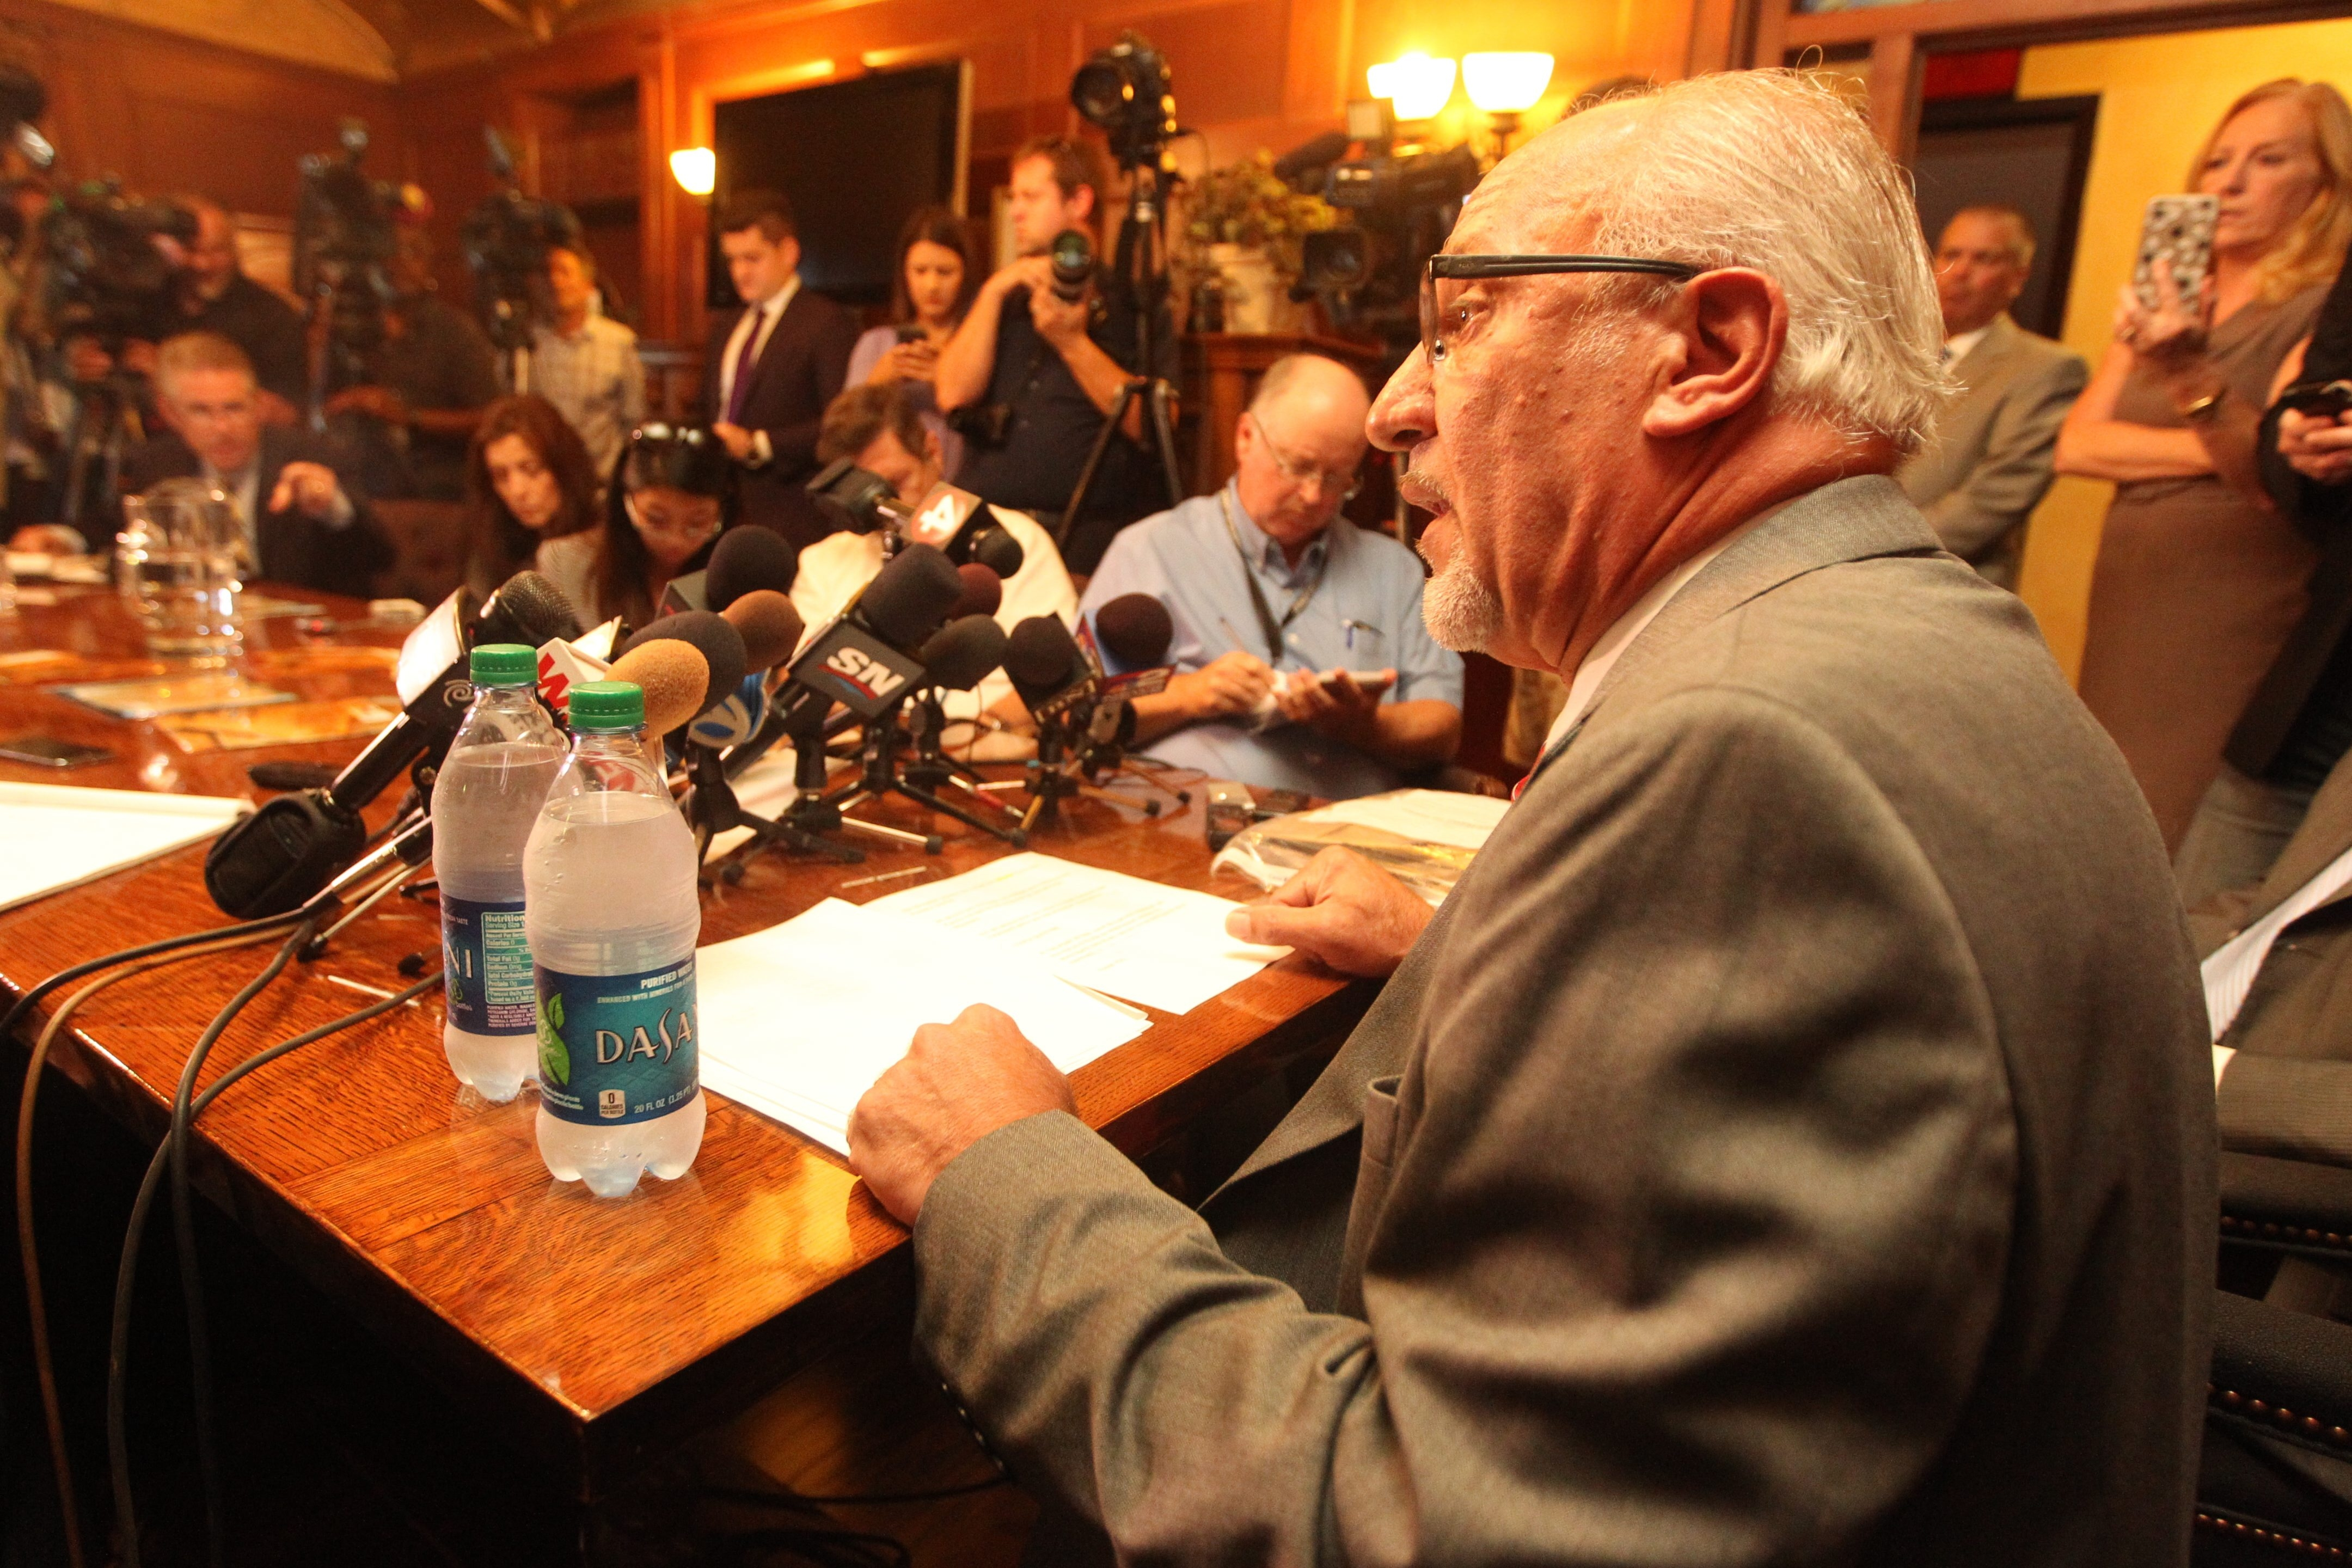 Thomas Eoannou, the attorney representing the woman has accused hockey star Patrick Kane of raping her, addresses the media in his offices at the Cornell Mansion in Buffalo on Sept. 23. (John Hickey/Buffalo News)